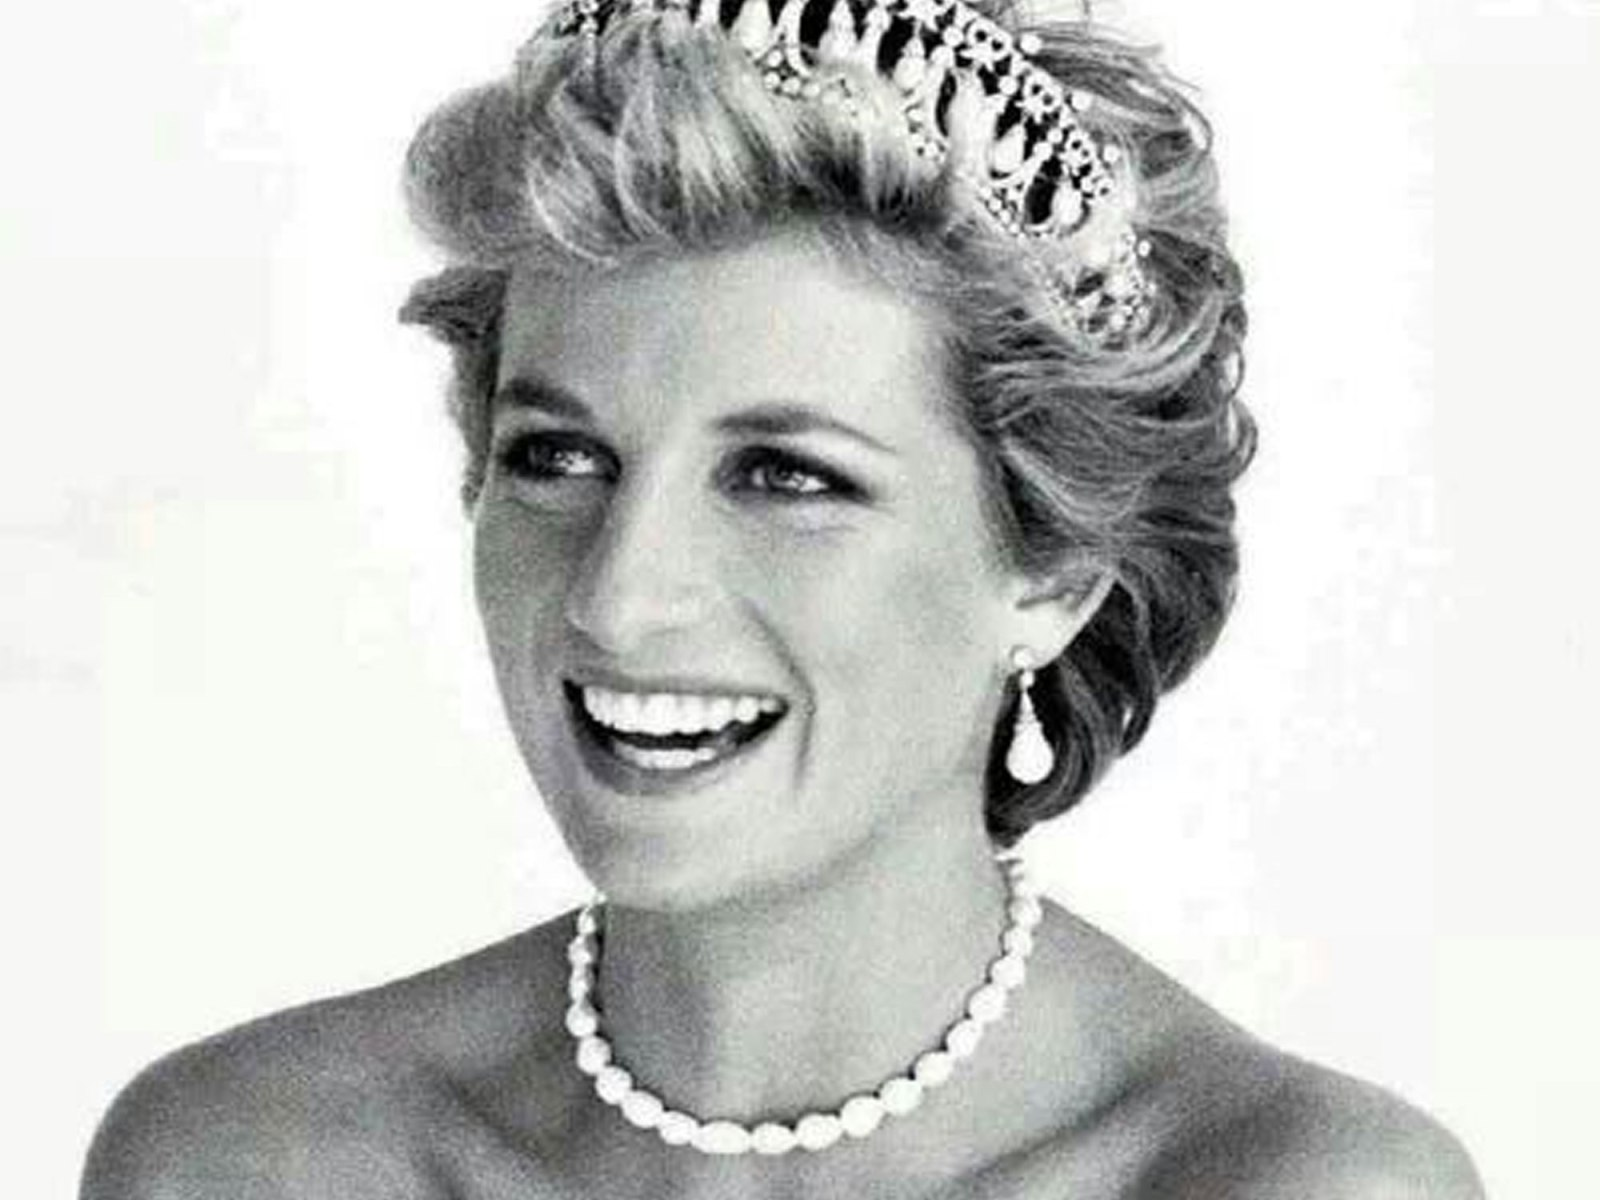 One of the things that Diana was remembered for, was her great fashion sense. So as we celebrate the newly weds and see how they've honoured Diana, we want to honour her in the best way we know how. So here's an overview of Princess Diana fashion looks that we love.